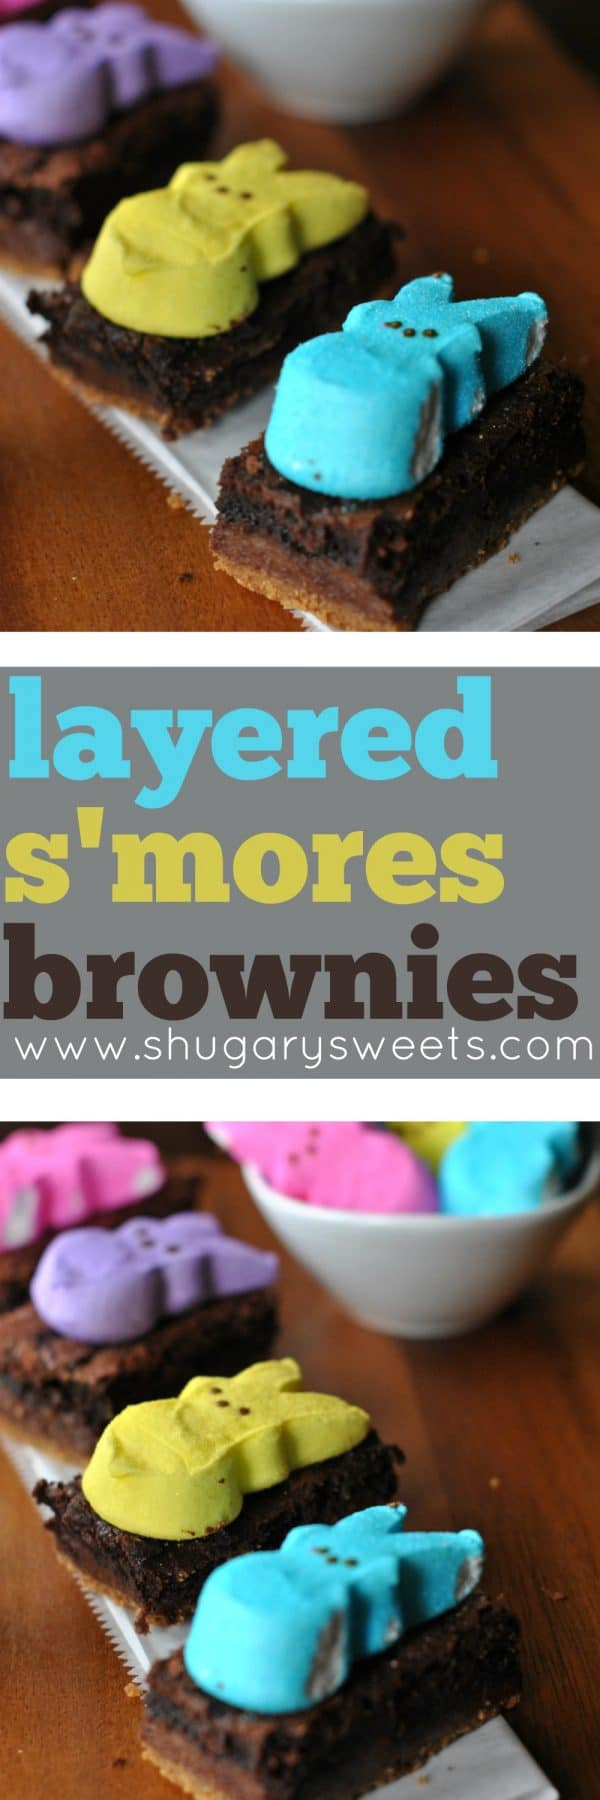 Easter is only a week and half away! Are you ready?? Well these cute Layered S'mores Brownies with PEEPS might help get you ready! Plus there is a PEEPS prize to win today too!